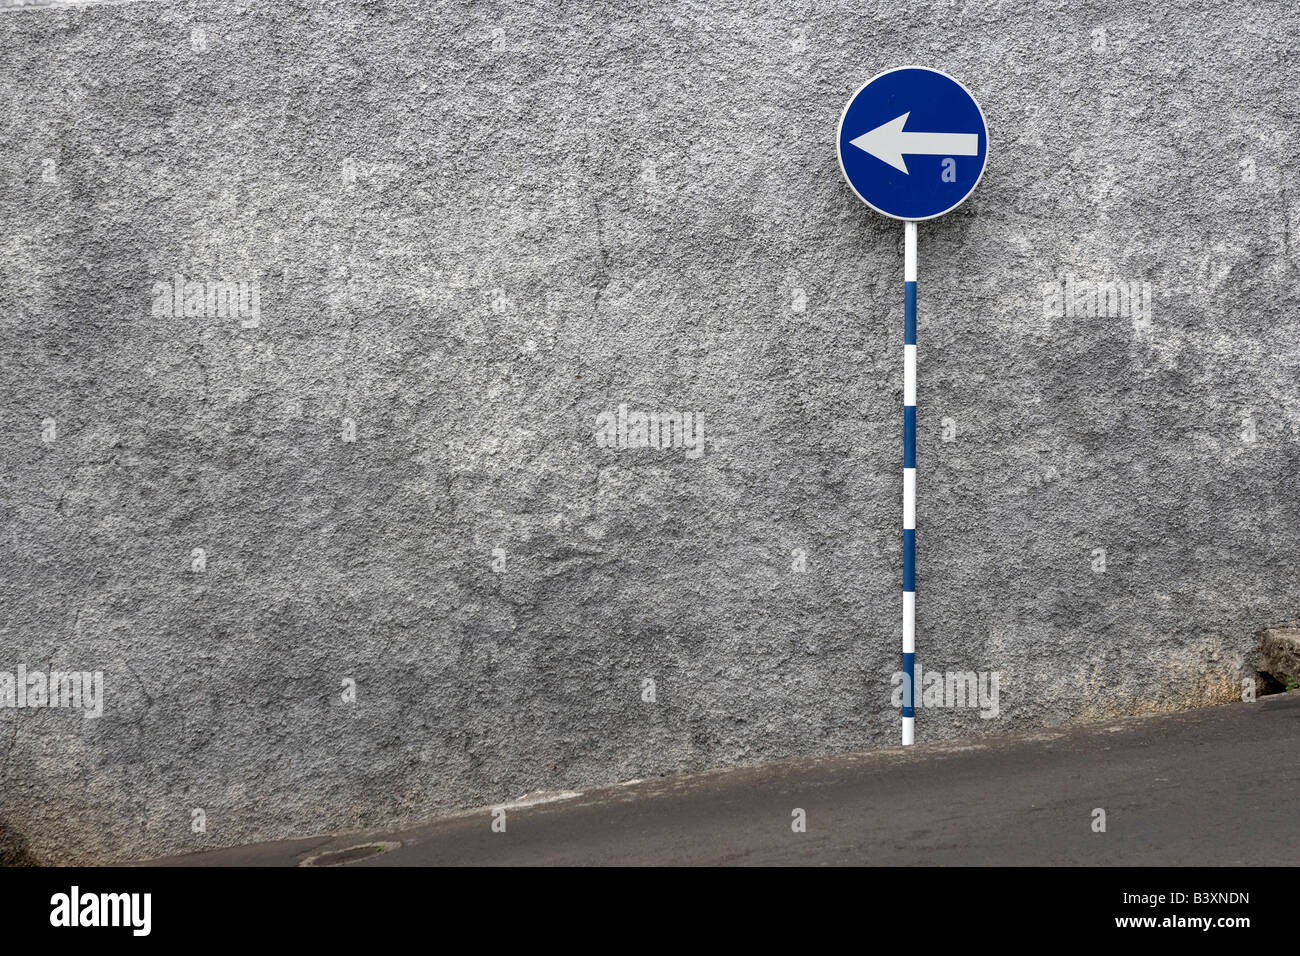 One way sign and stone wall, Madeira, Portugal. Stock Photo